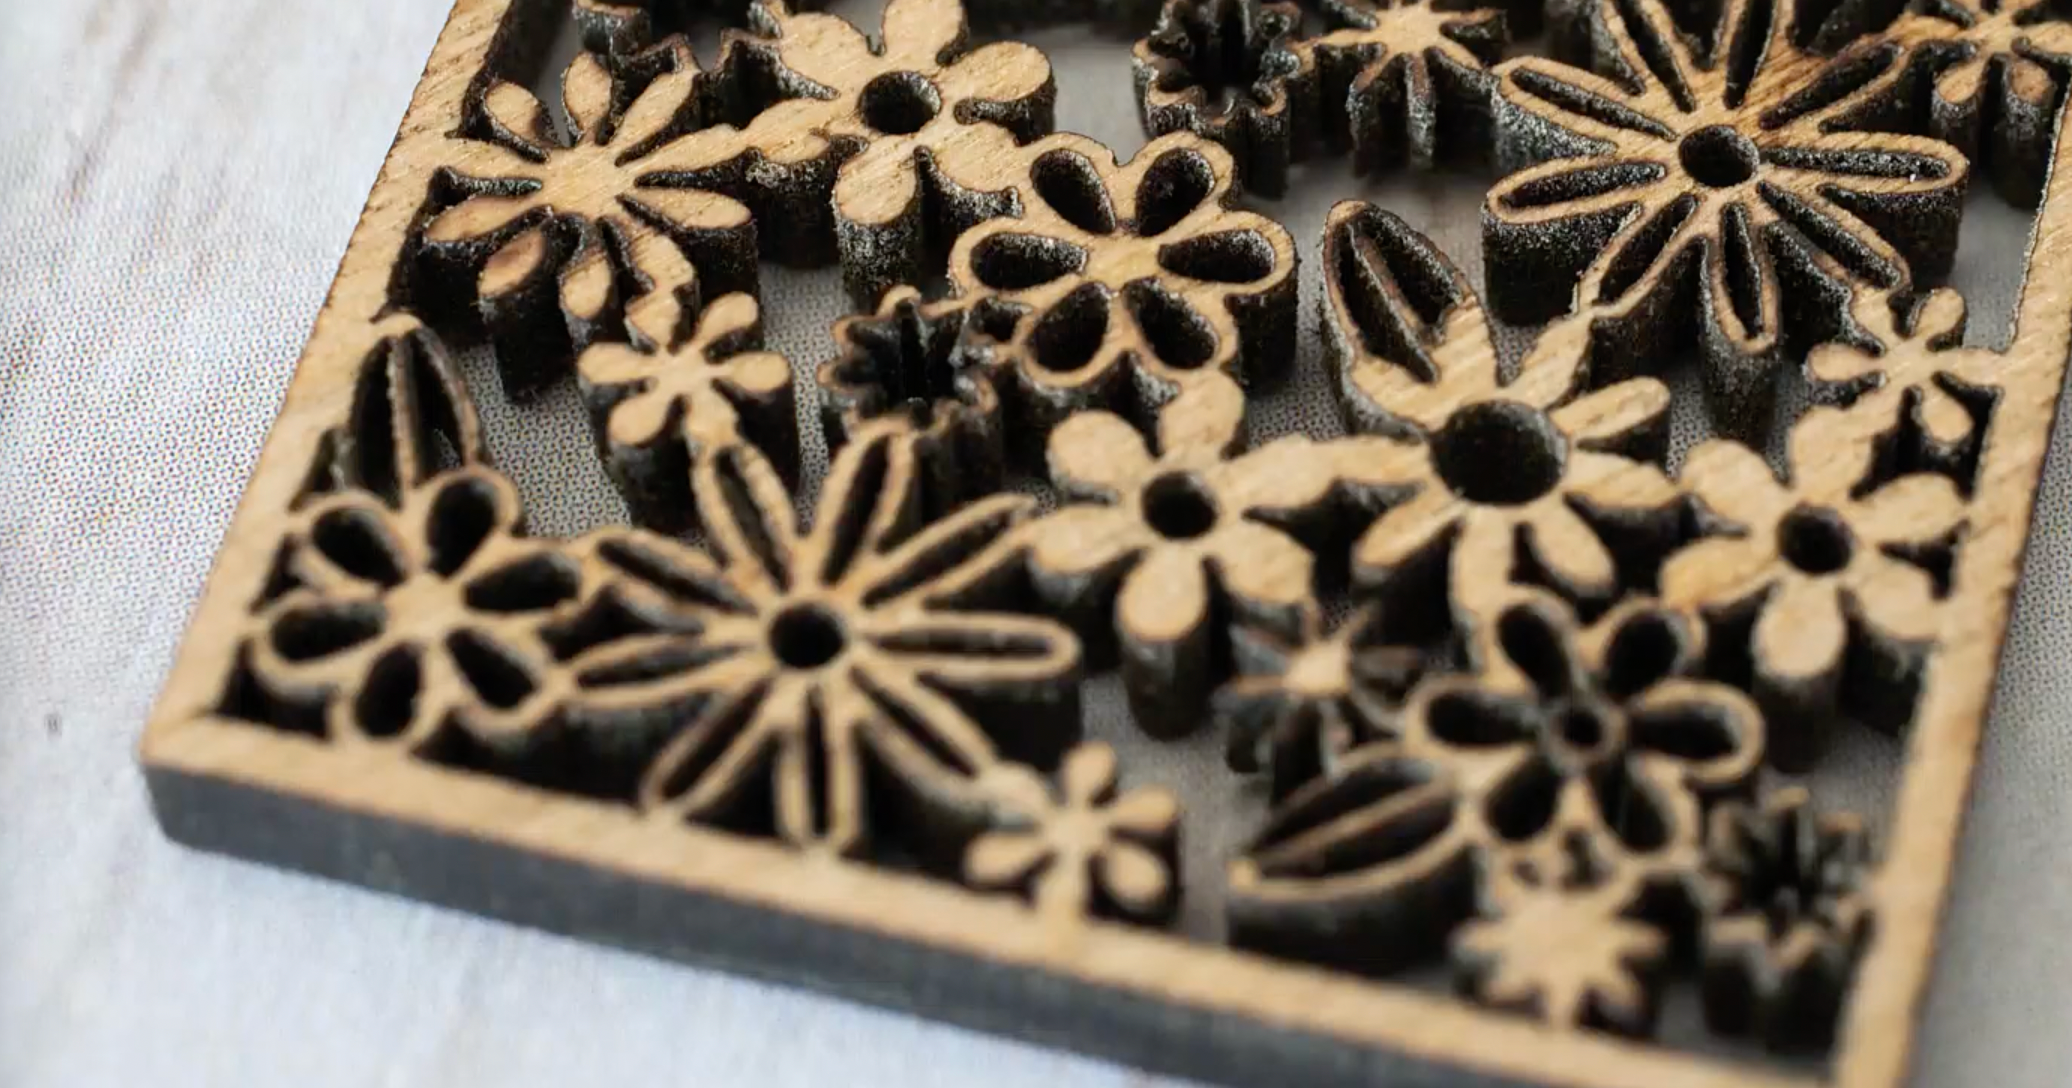 Wood Burning By Hand - A Relaxing + Versatile Craft